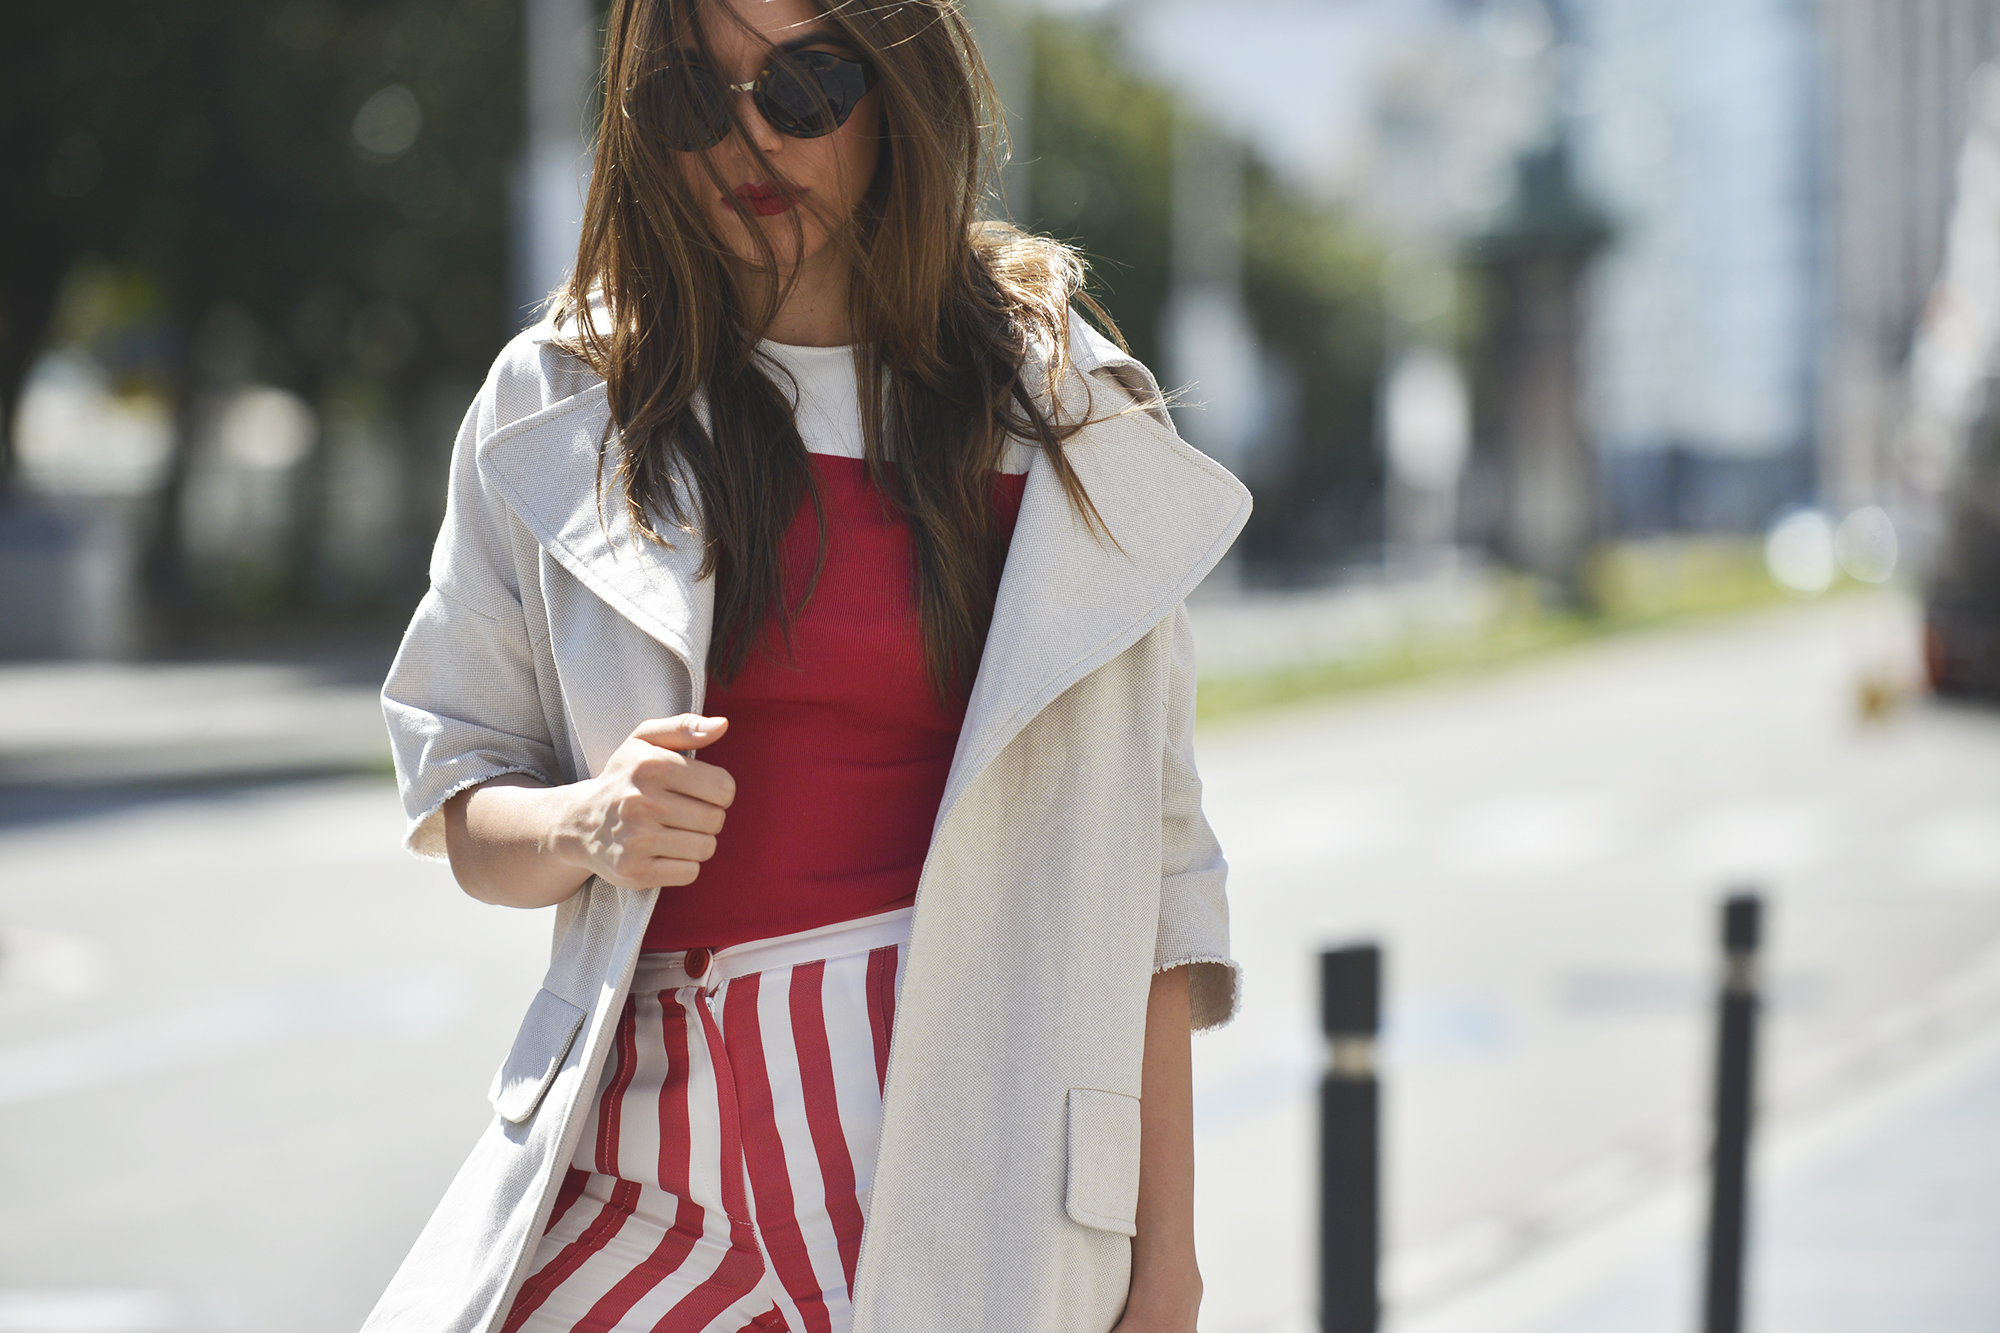 Stripes in red